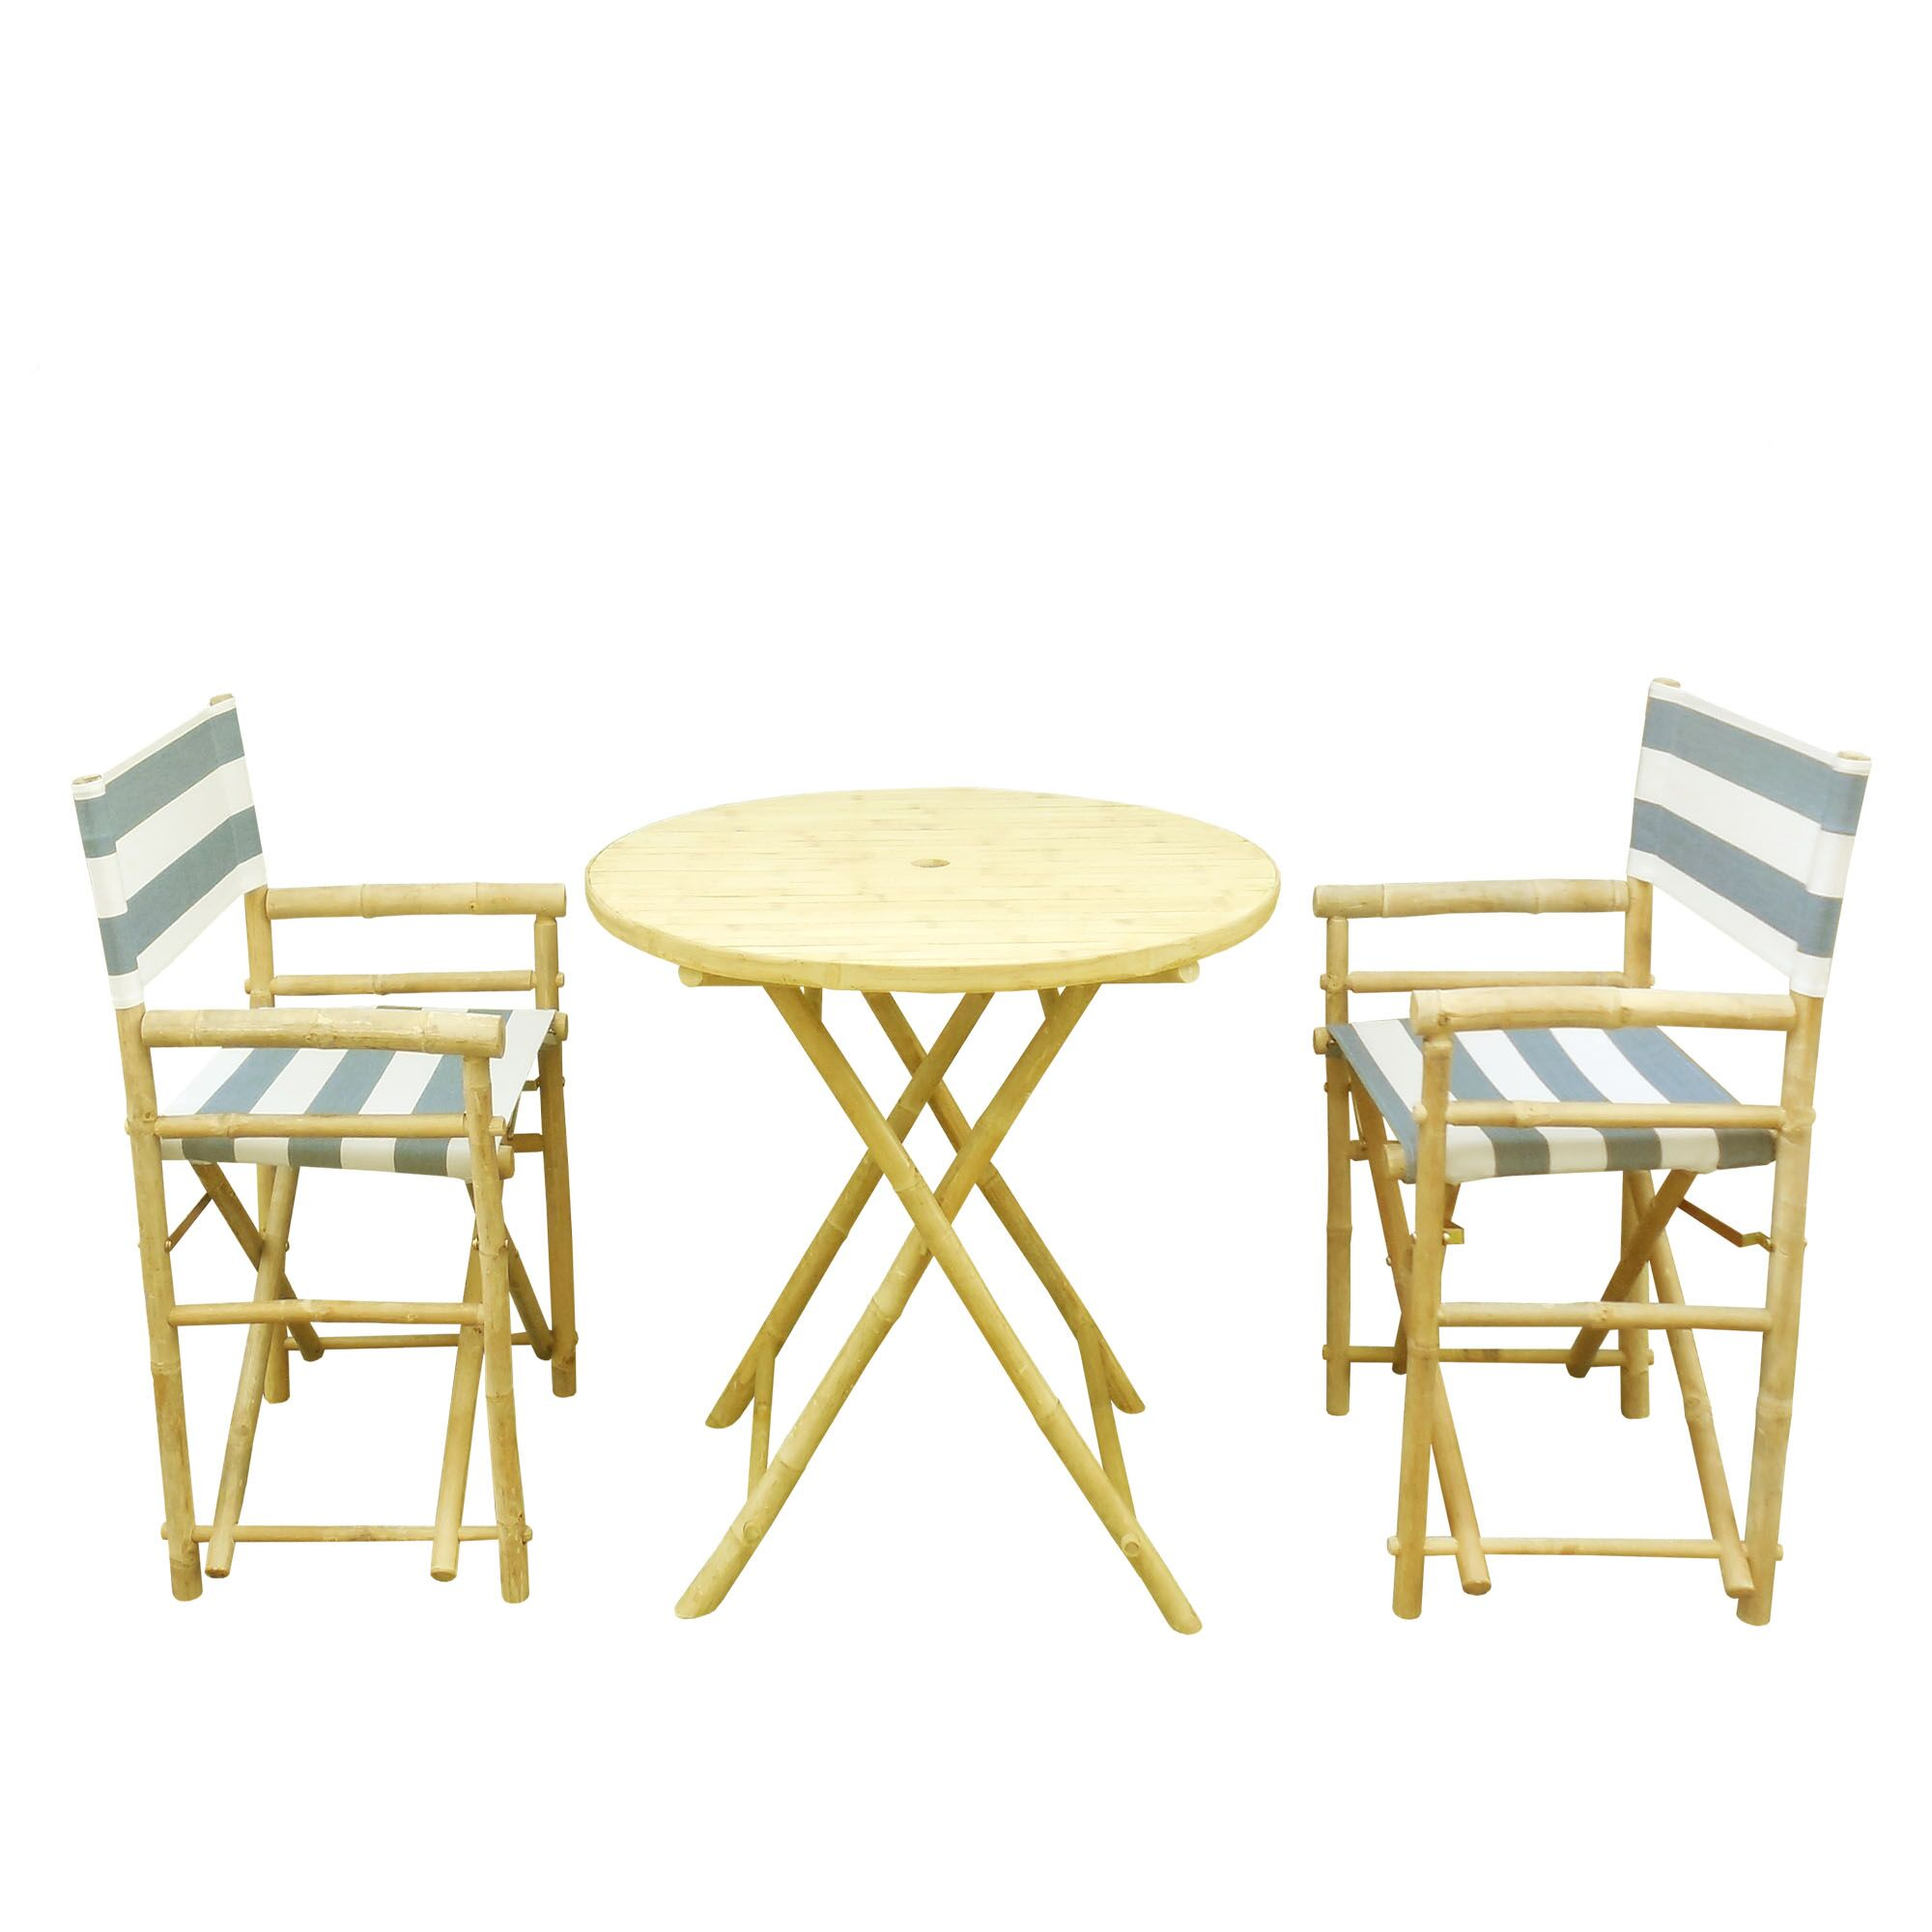 Bamboo 3 Piece Outdoor Dinning Set Color: Navy and White